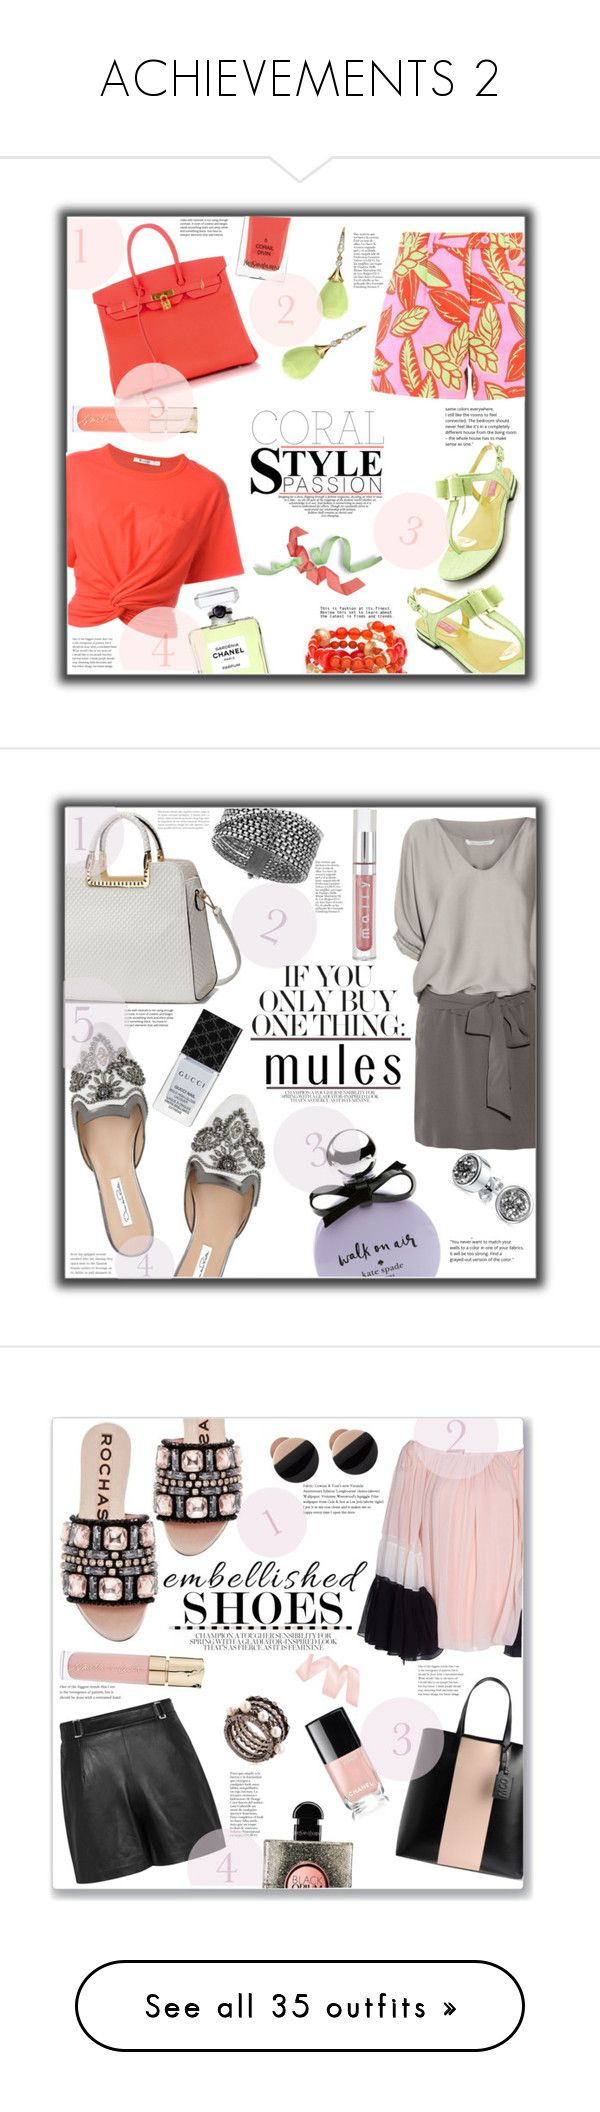 """""""ACHIEVEMENTS 2"""" by jckallan ❤ liked on Polyvore featuring Boutique Moschino, Alexander Wang, Isaac Mizrahi, Hermès, Chico's, Chanel, Yves Saint Laurent, Smith & Cult, contestentry and Oscar de la Renta"""